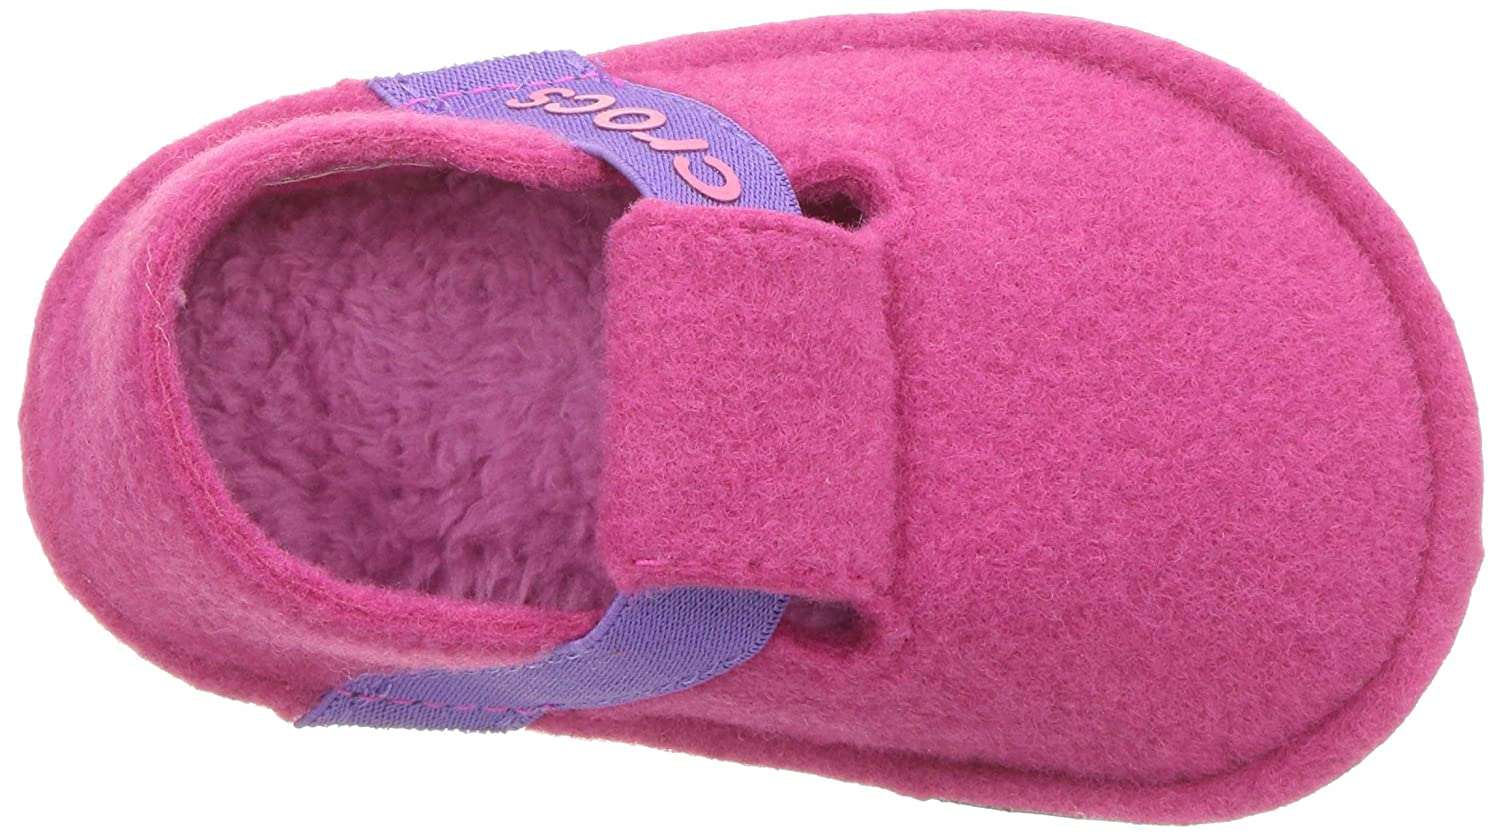 Comfortable Slip On Toddler Shoe with Soft  Liner Crocs Kids Boys and Girls Classic Slipper